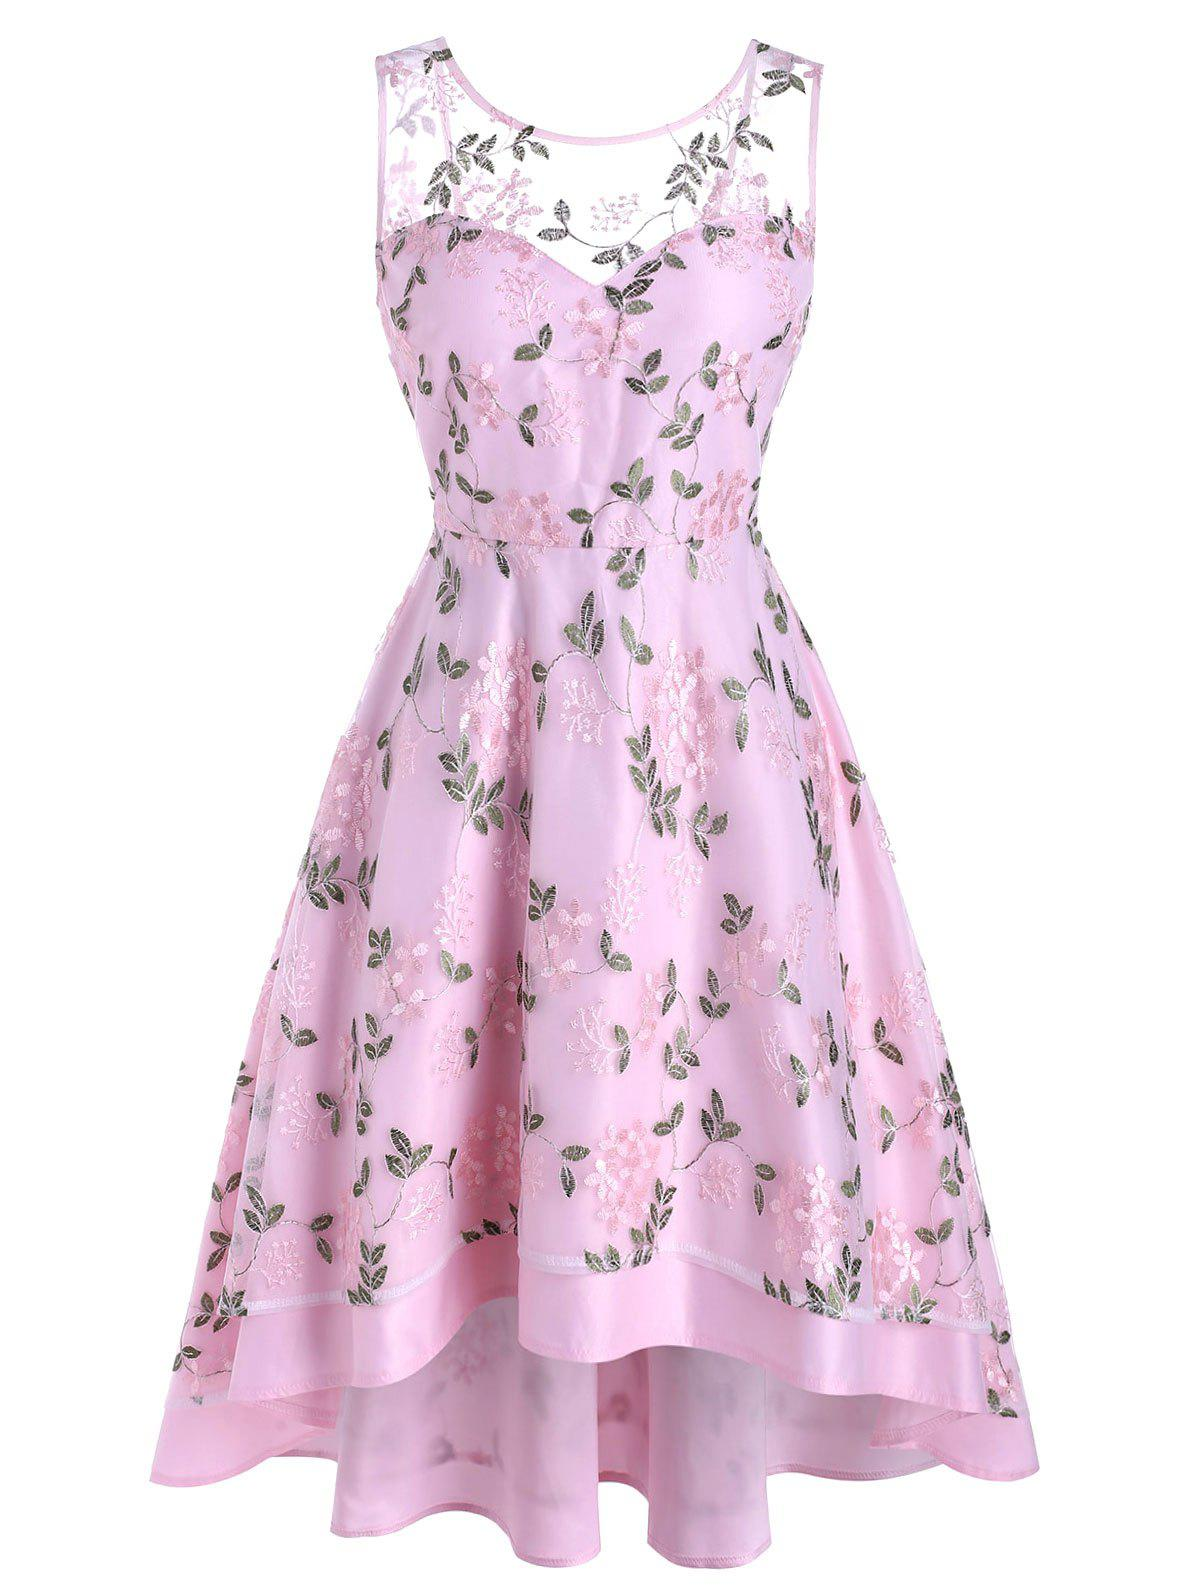 Flower Leaf Embroidered Lace Overlay High Low Dress - LIGHT PINK XL